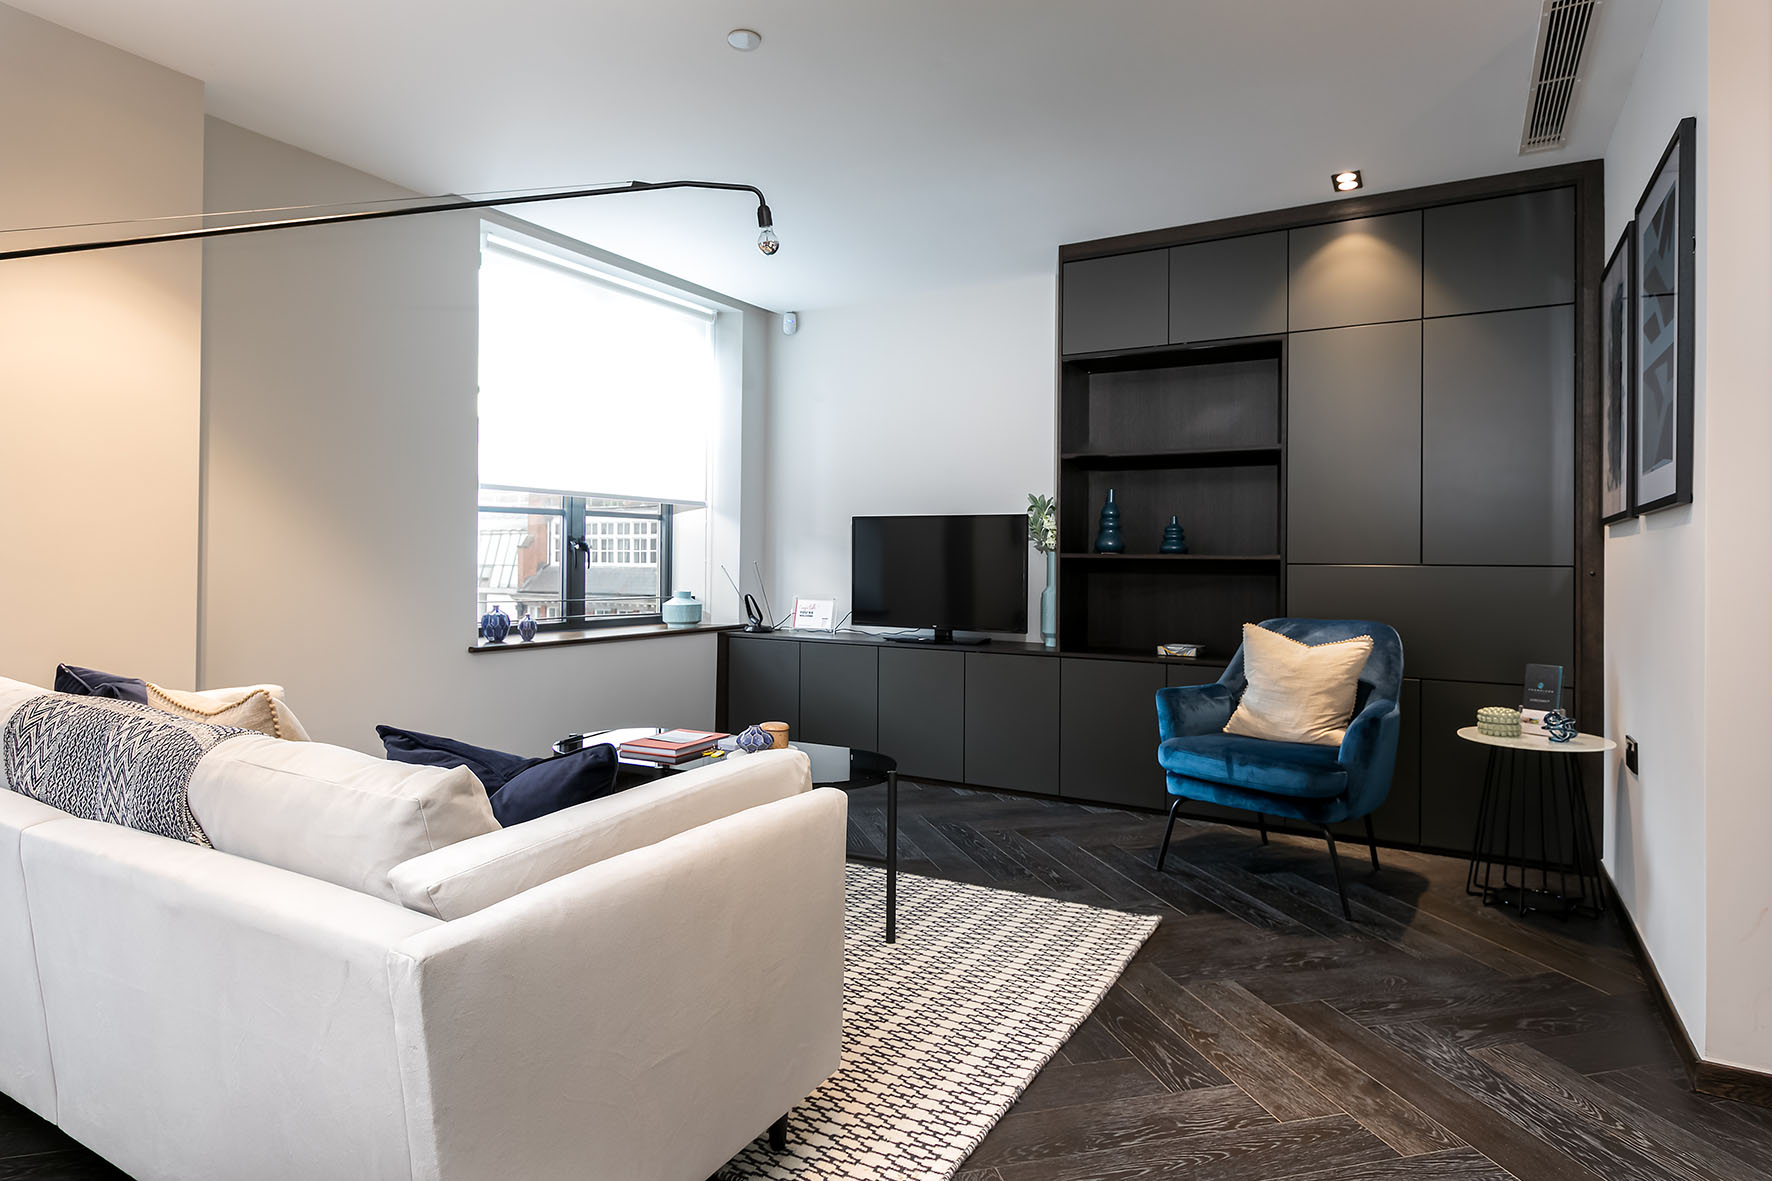 Lovelydays luxury service apartment rental - London - Soho - Noel Street VII - Lovelysuite - 1 bedrooms - 1 bathrooms - Luxury living room - 6e491e0a3843 - Lovelydays